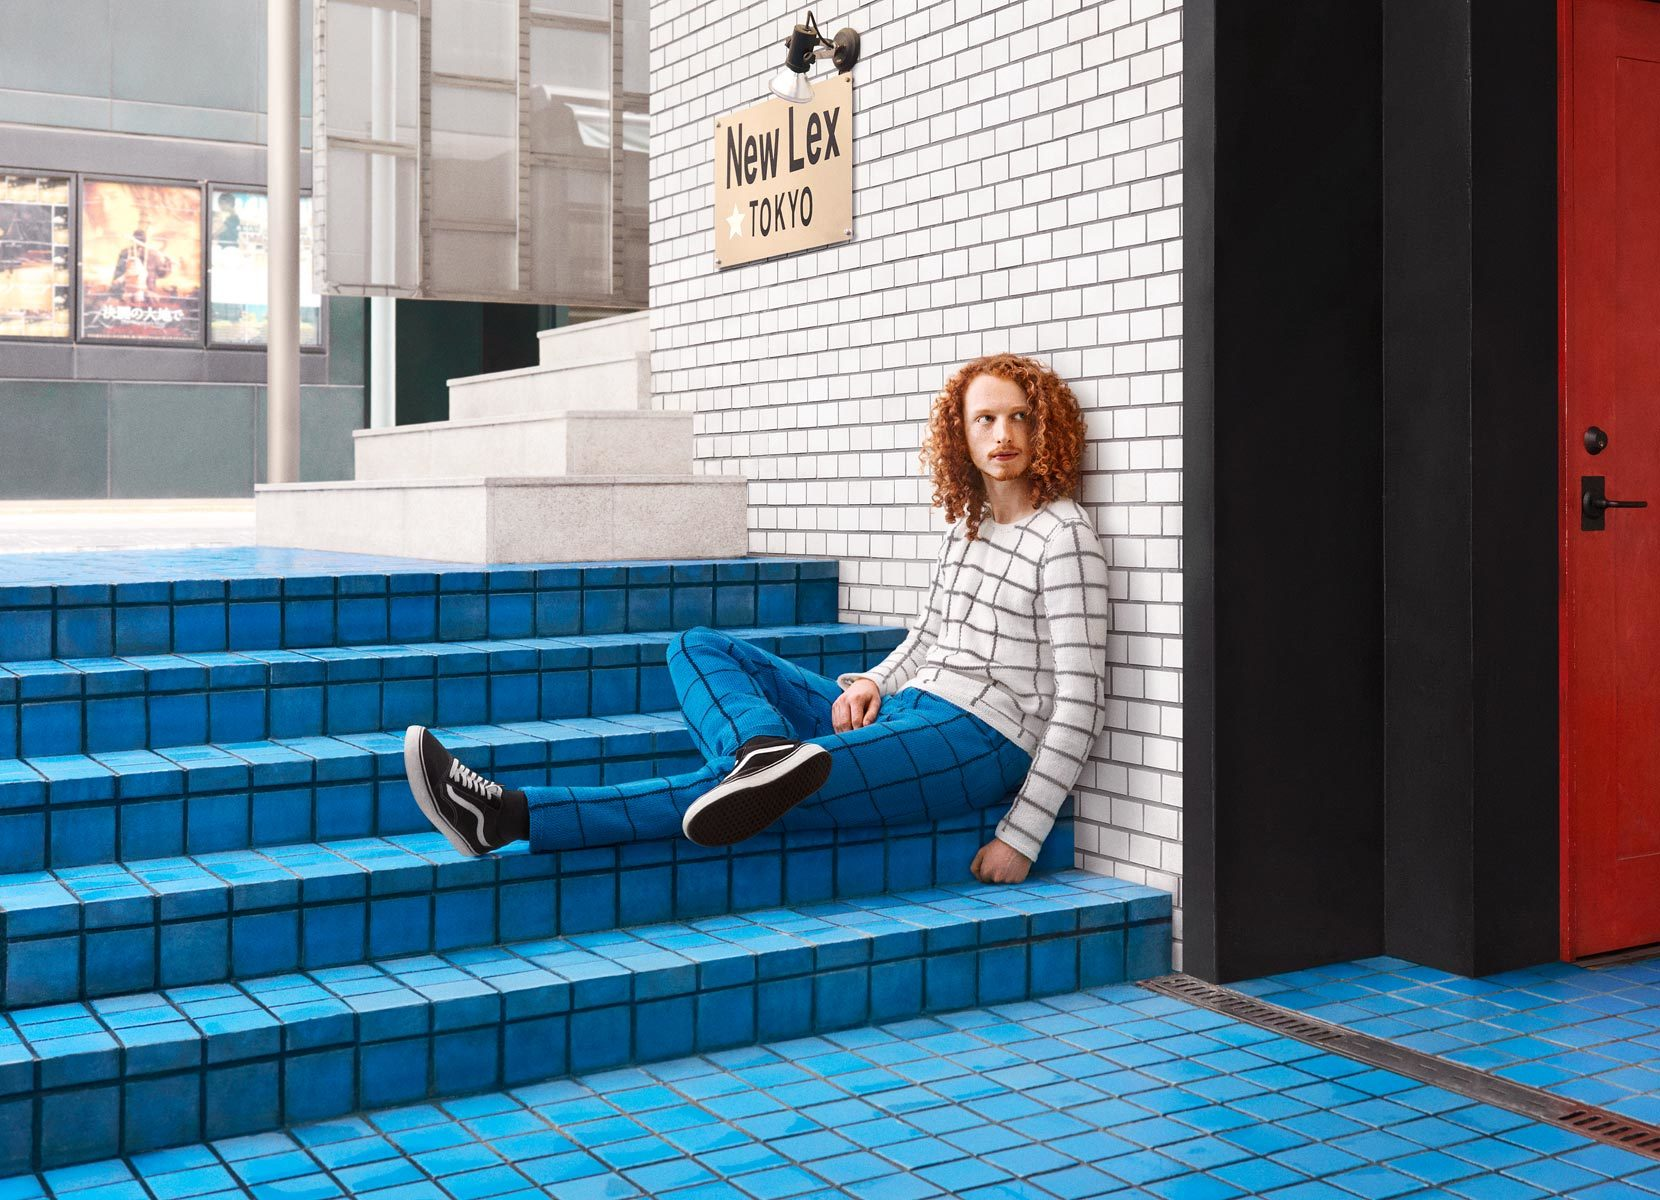 knitted proyect de Joseph Ford